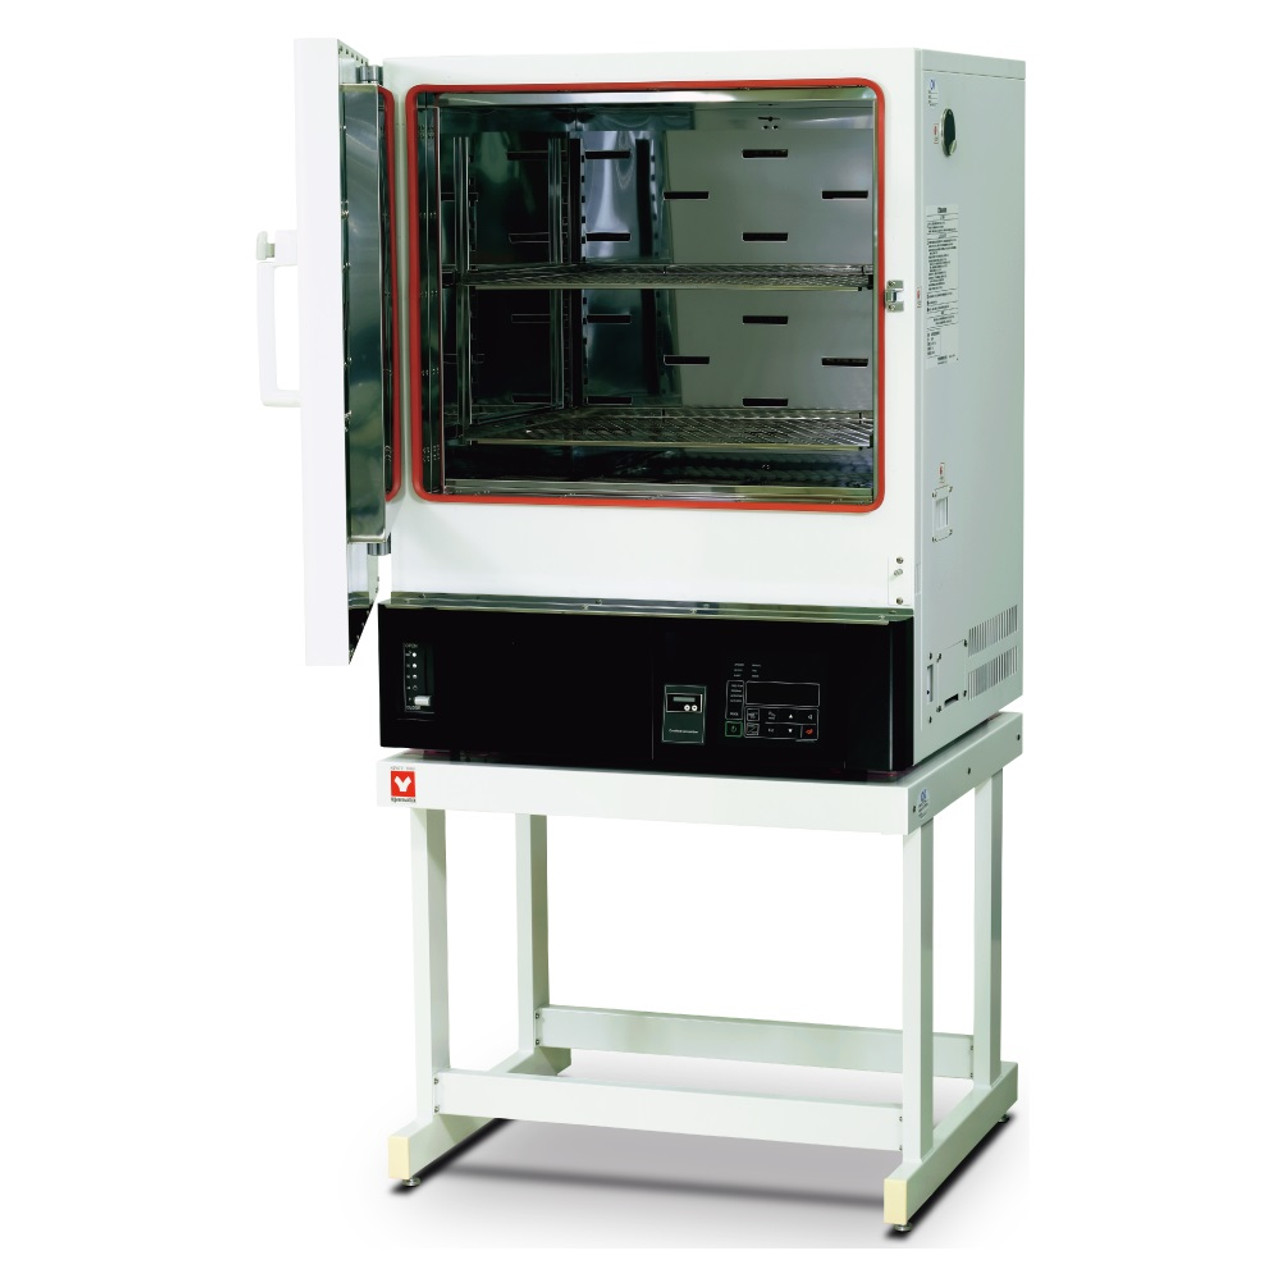 Yamato DNF-601 Programmable Forced Air Convection Oven 150L 115V